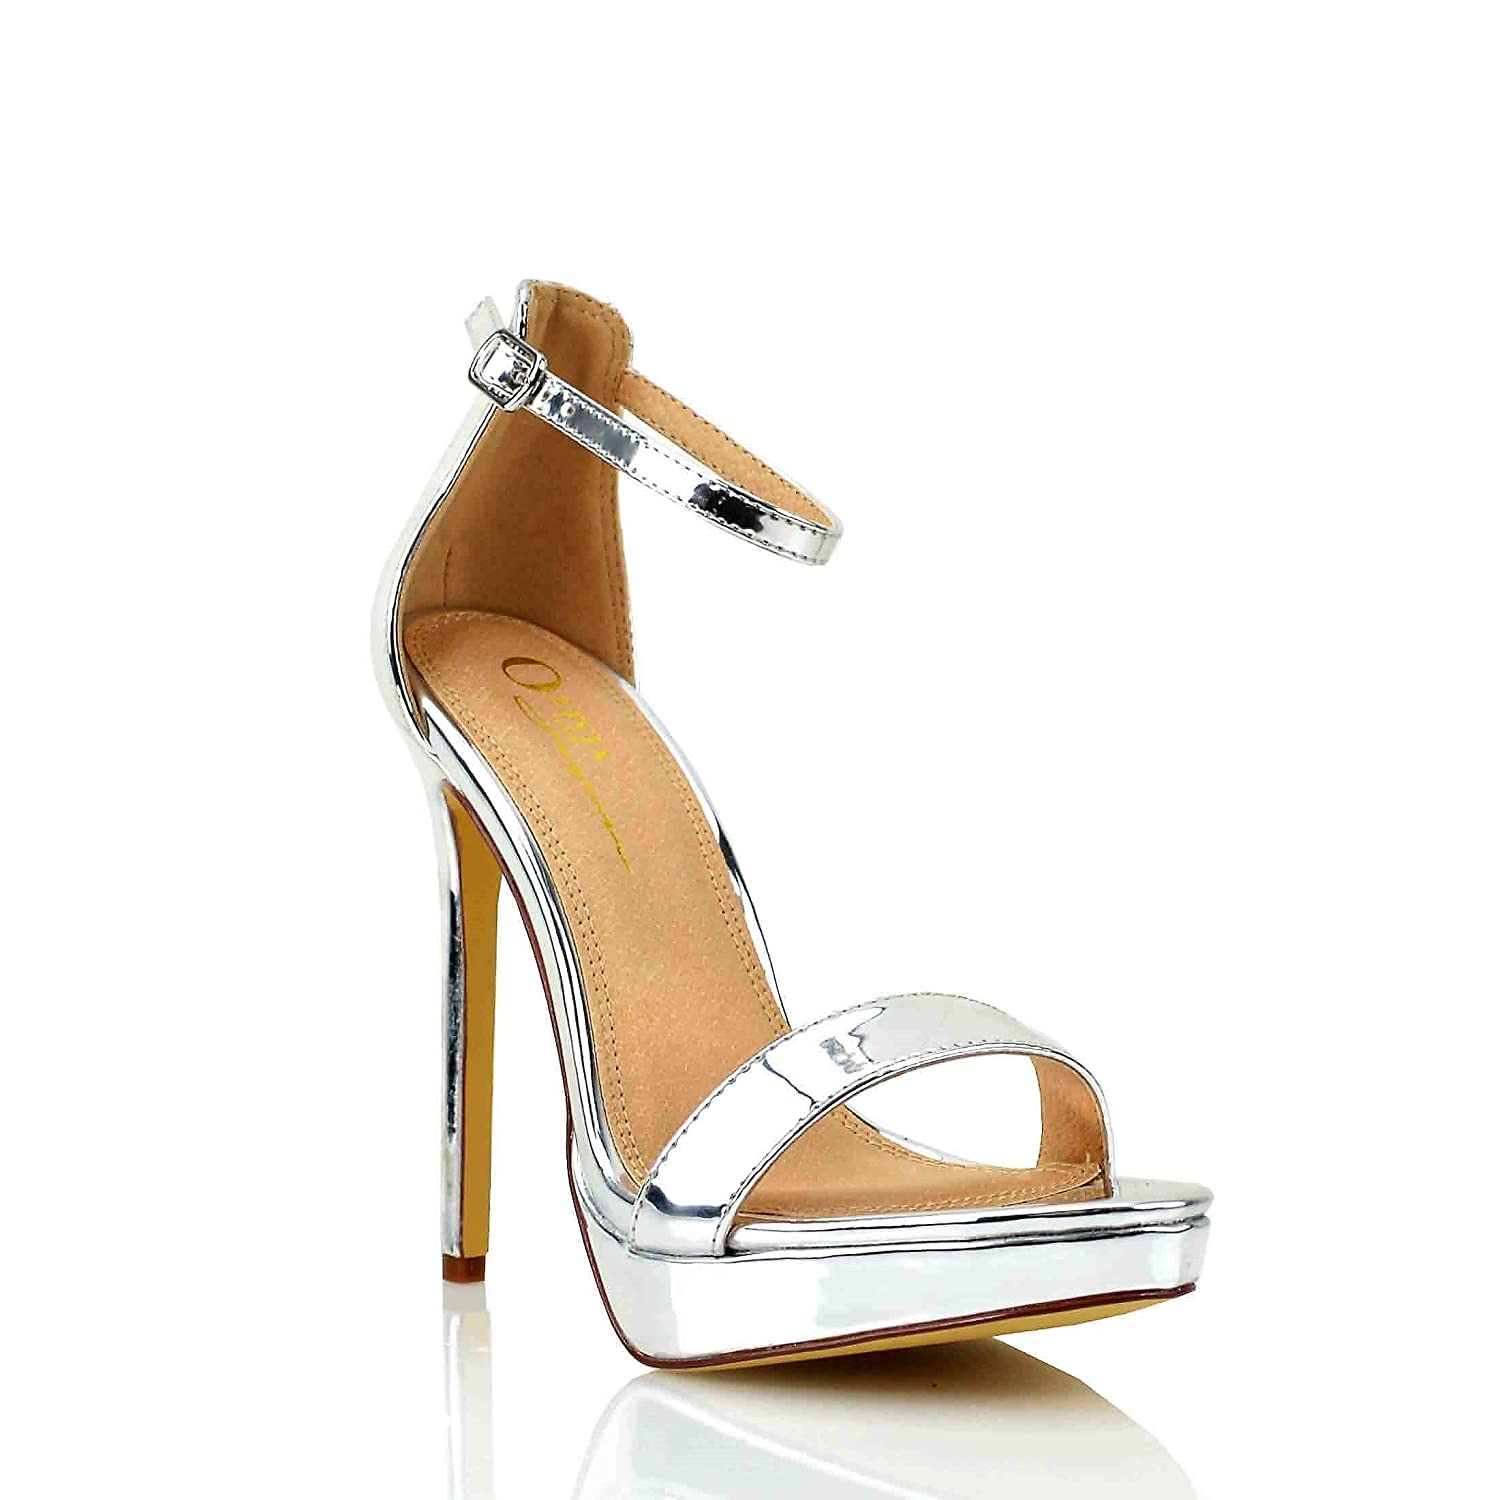 7b875749ea3d7 Women's Dress Sandal | Round Open Toe | One Band Thin Ankle Strap ...